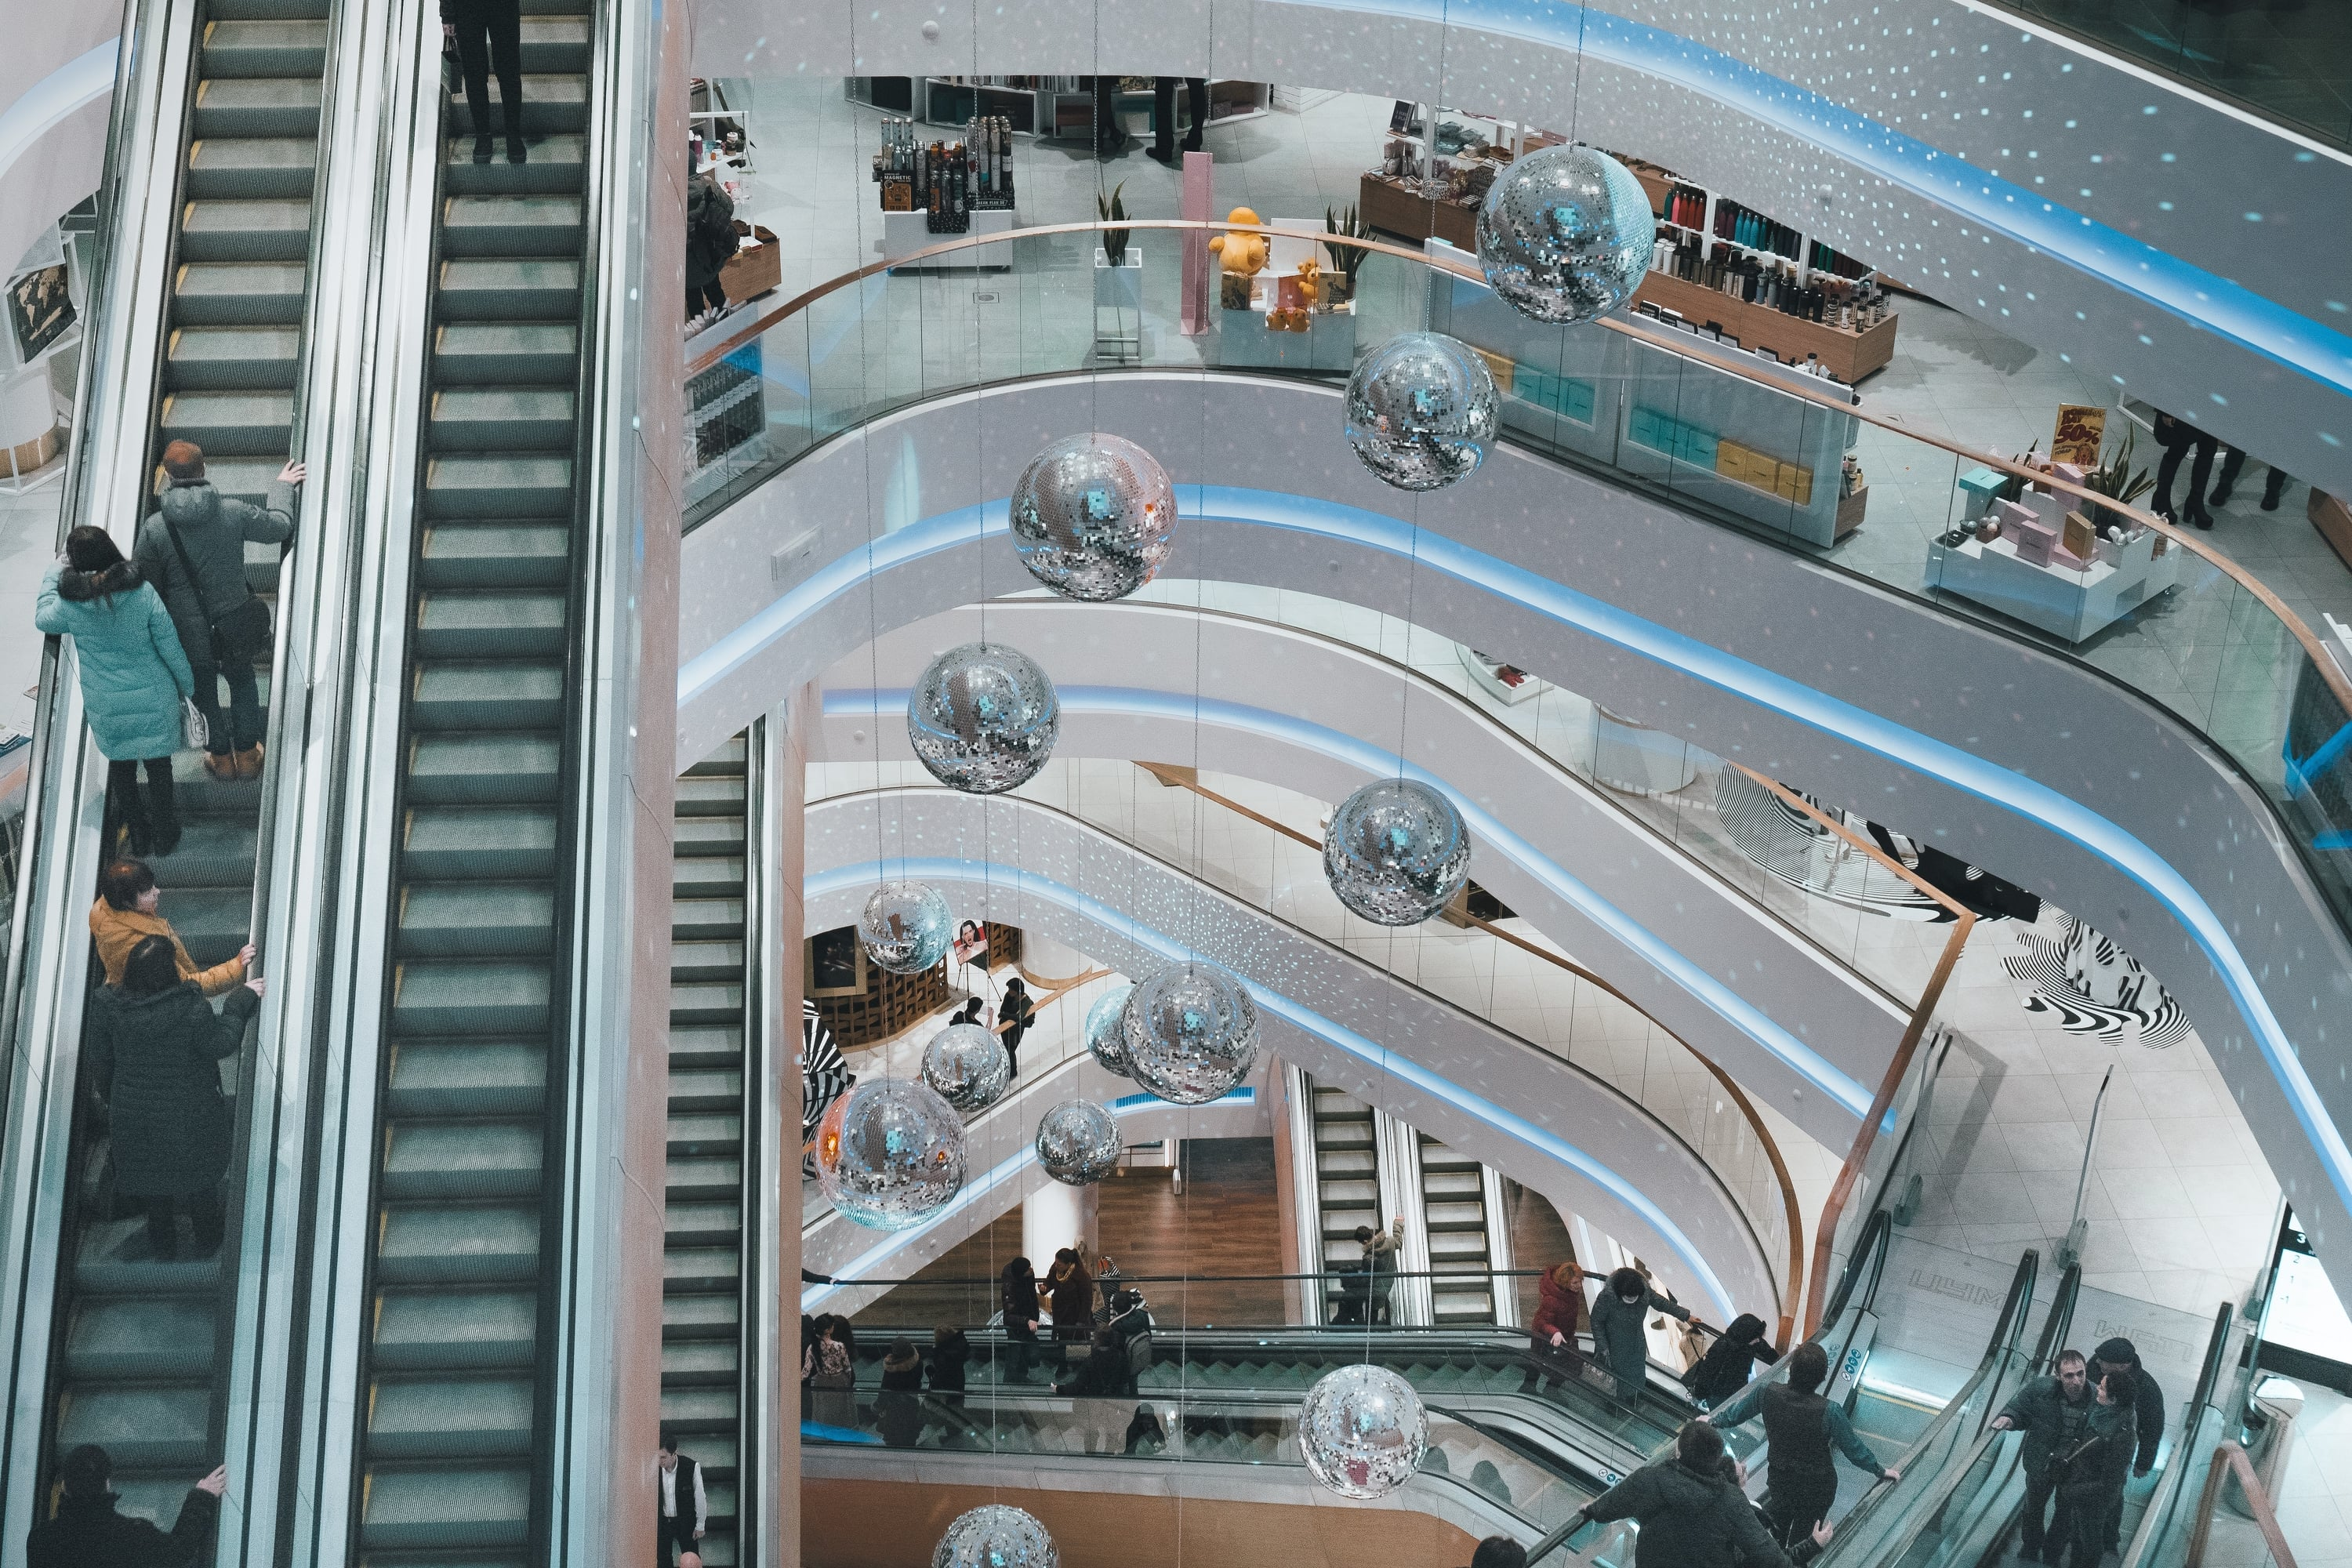 Escalator in shopping mall